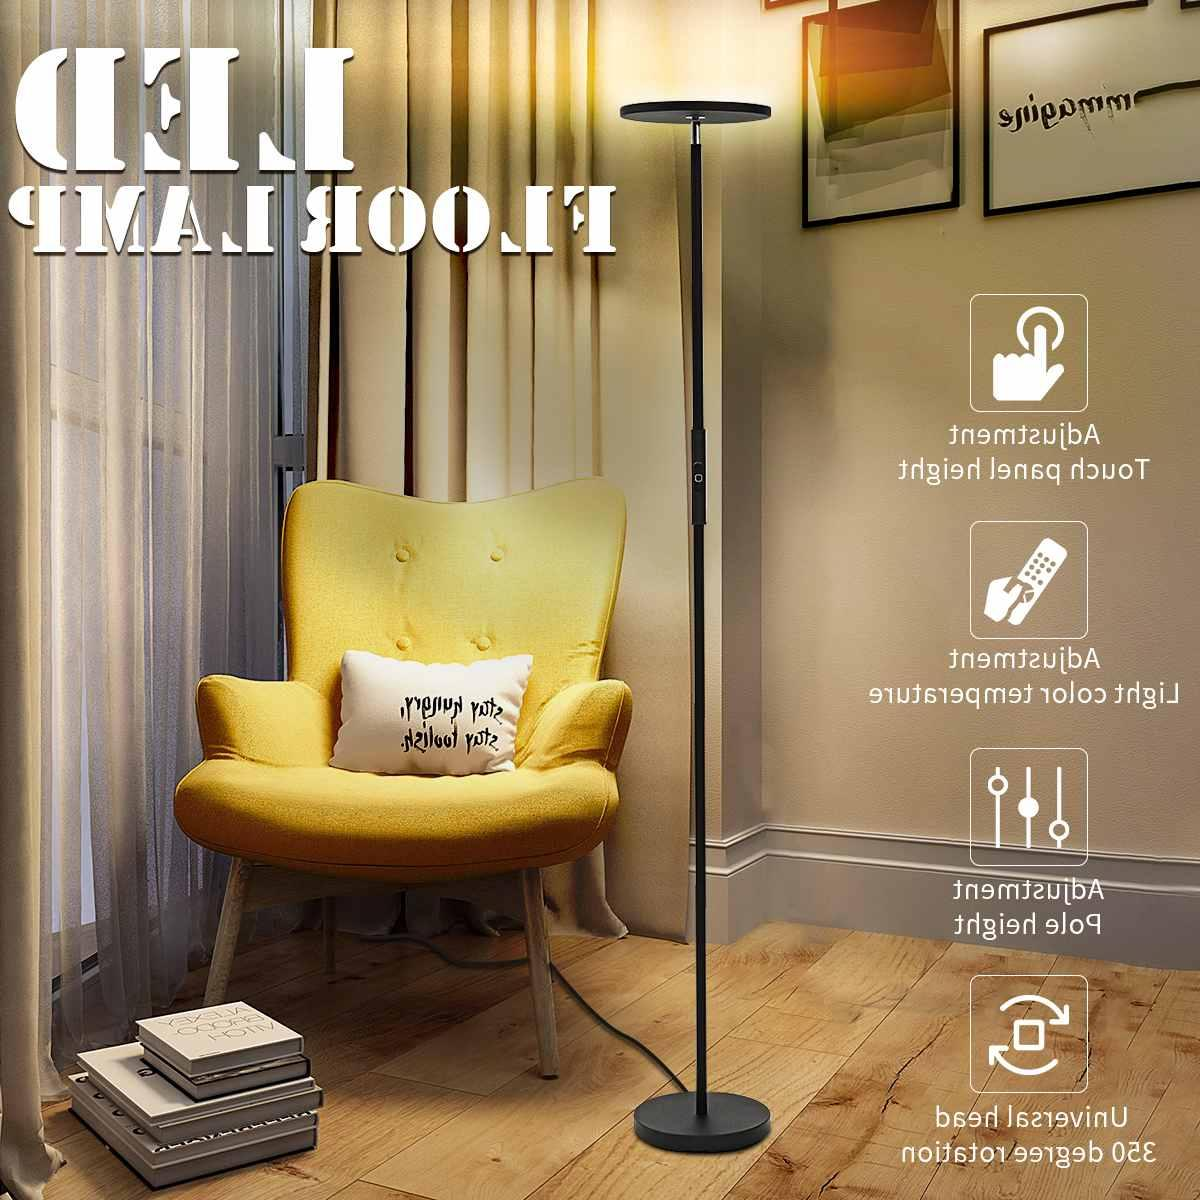 European Adjustable Lights Dimmable Remote Control Living Room